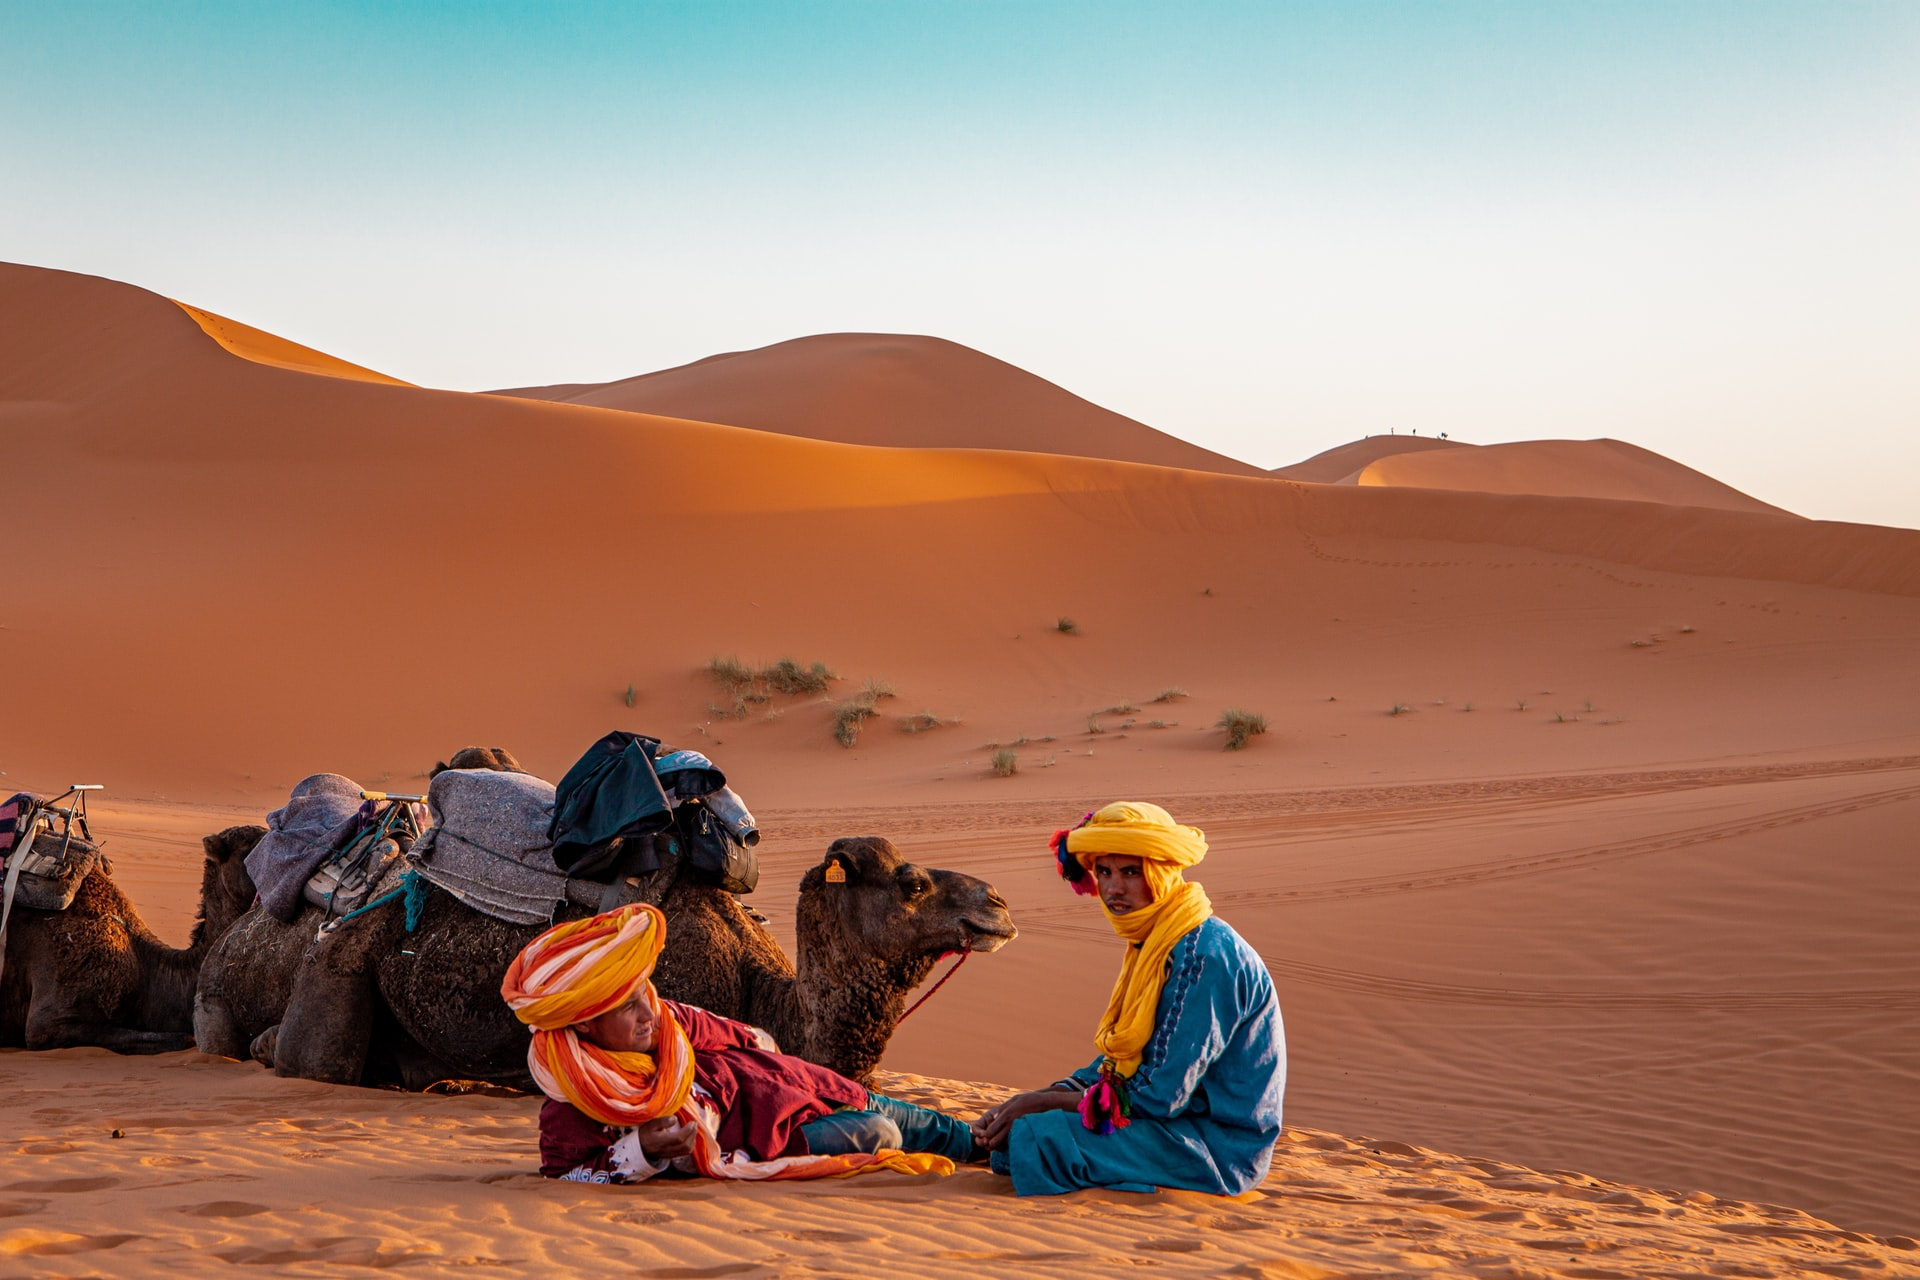 Sunset in the dunes of Merzouga